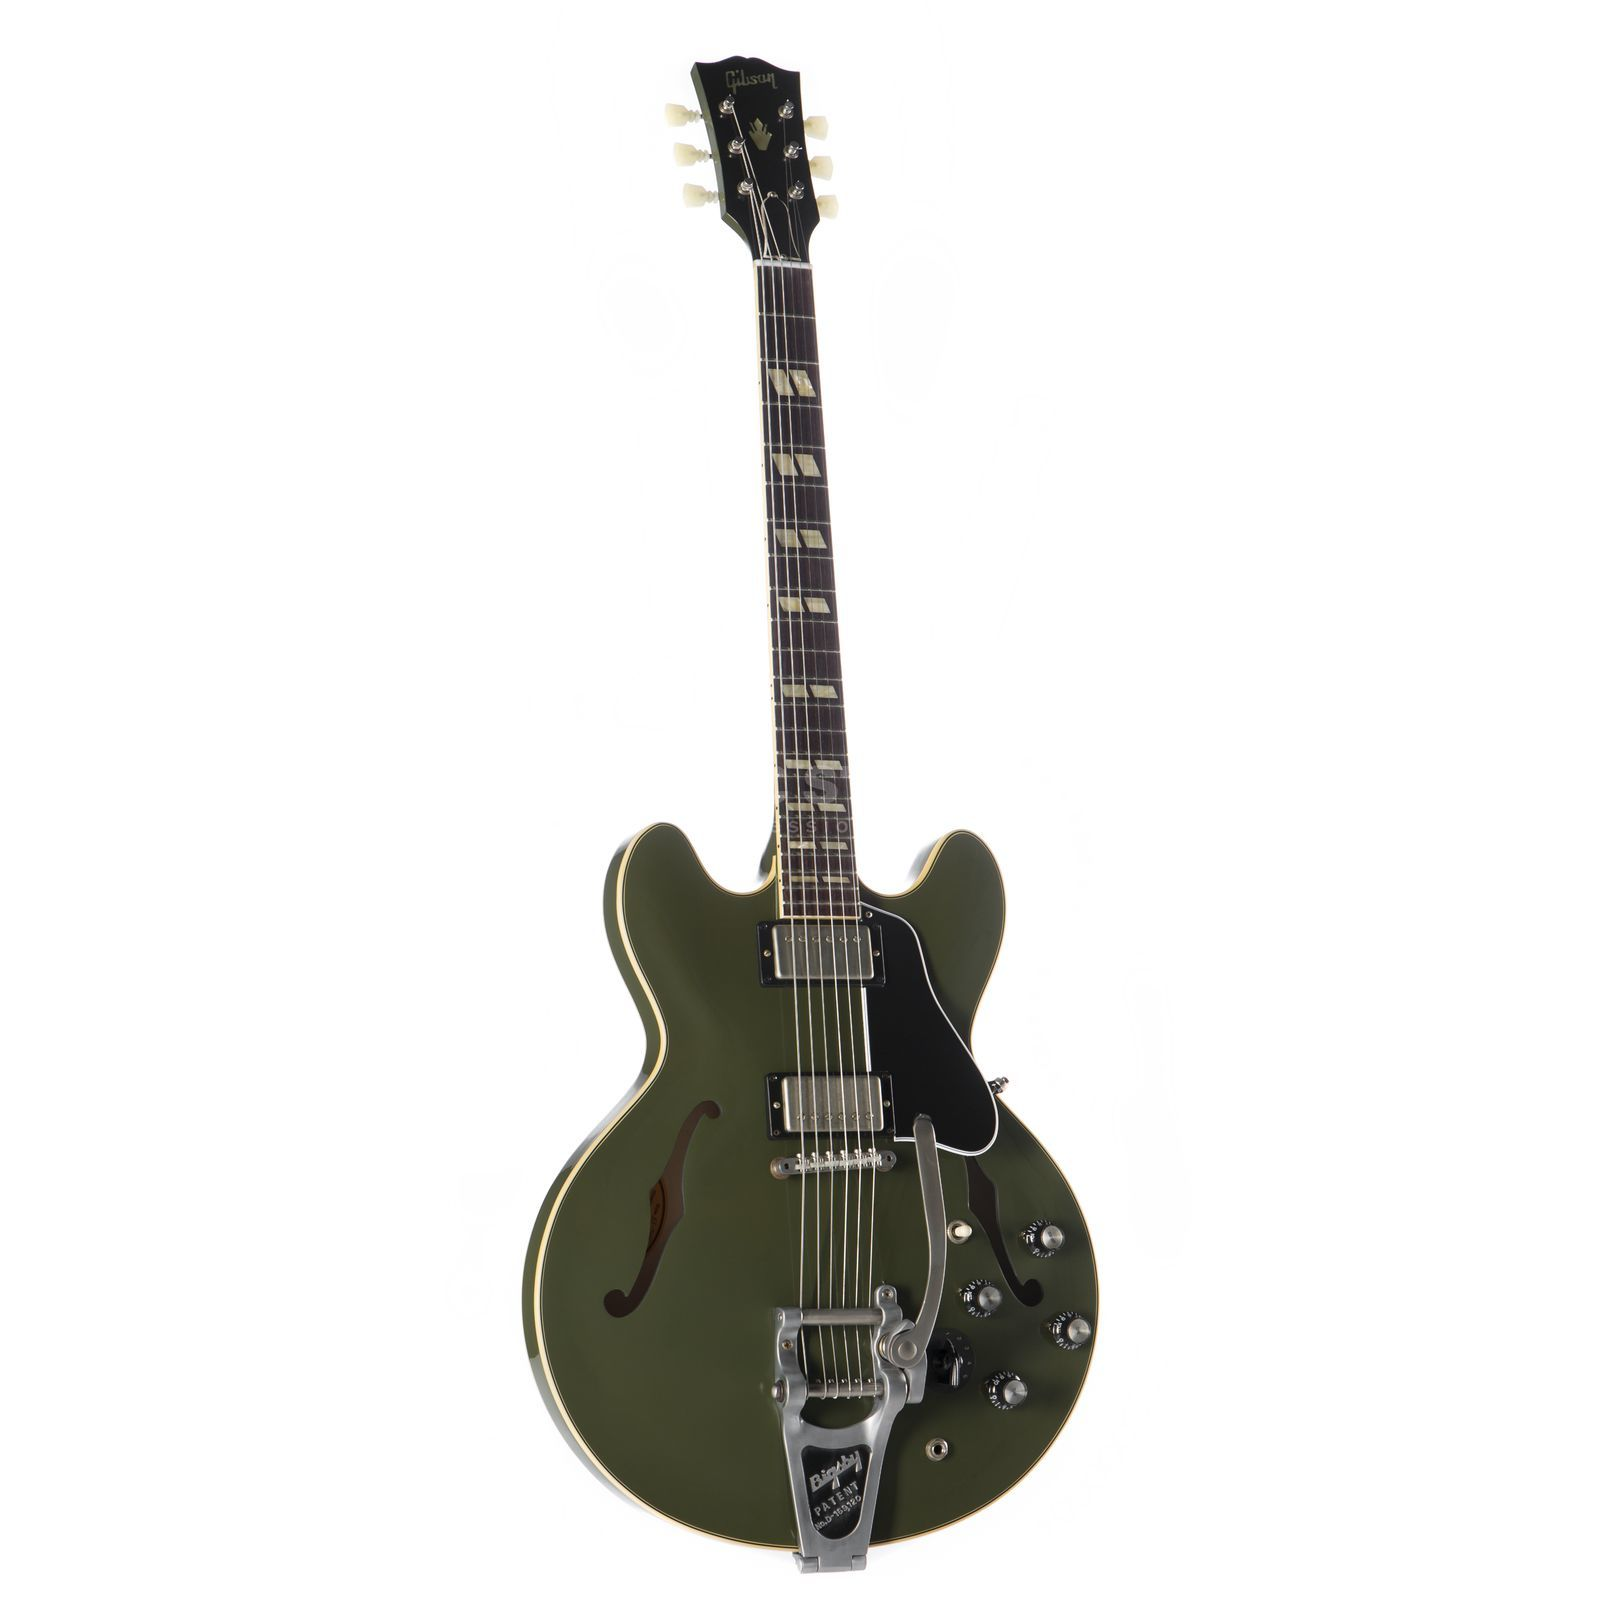 Gibson ES-345 Bigsby Olive Drab Green #61579 Product Image